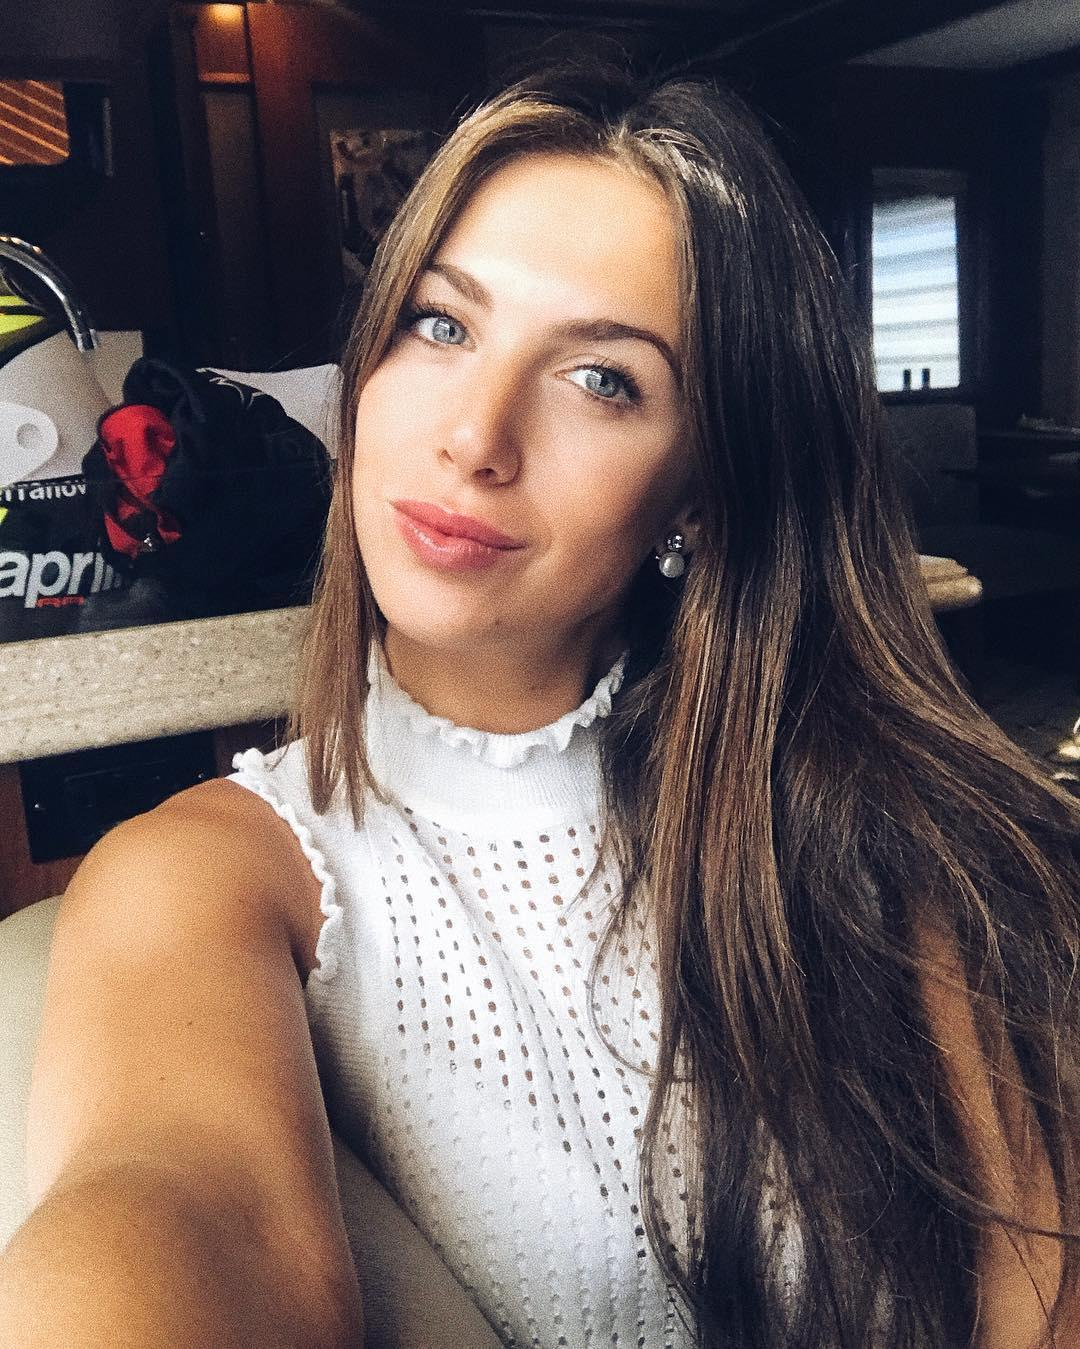 Architect and Barcelona fan Laura Montero is married to MotoGP star Aleix Espargaro